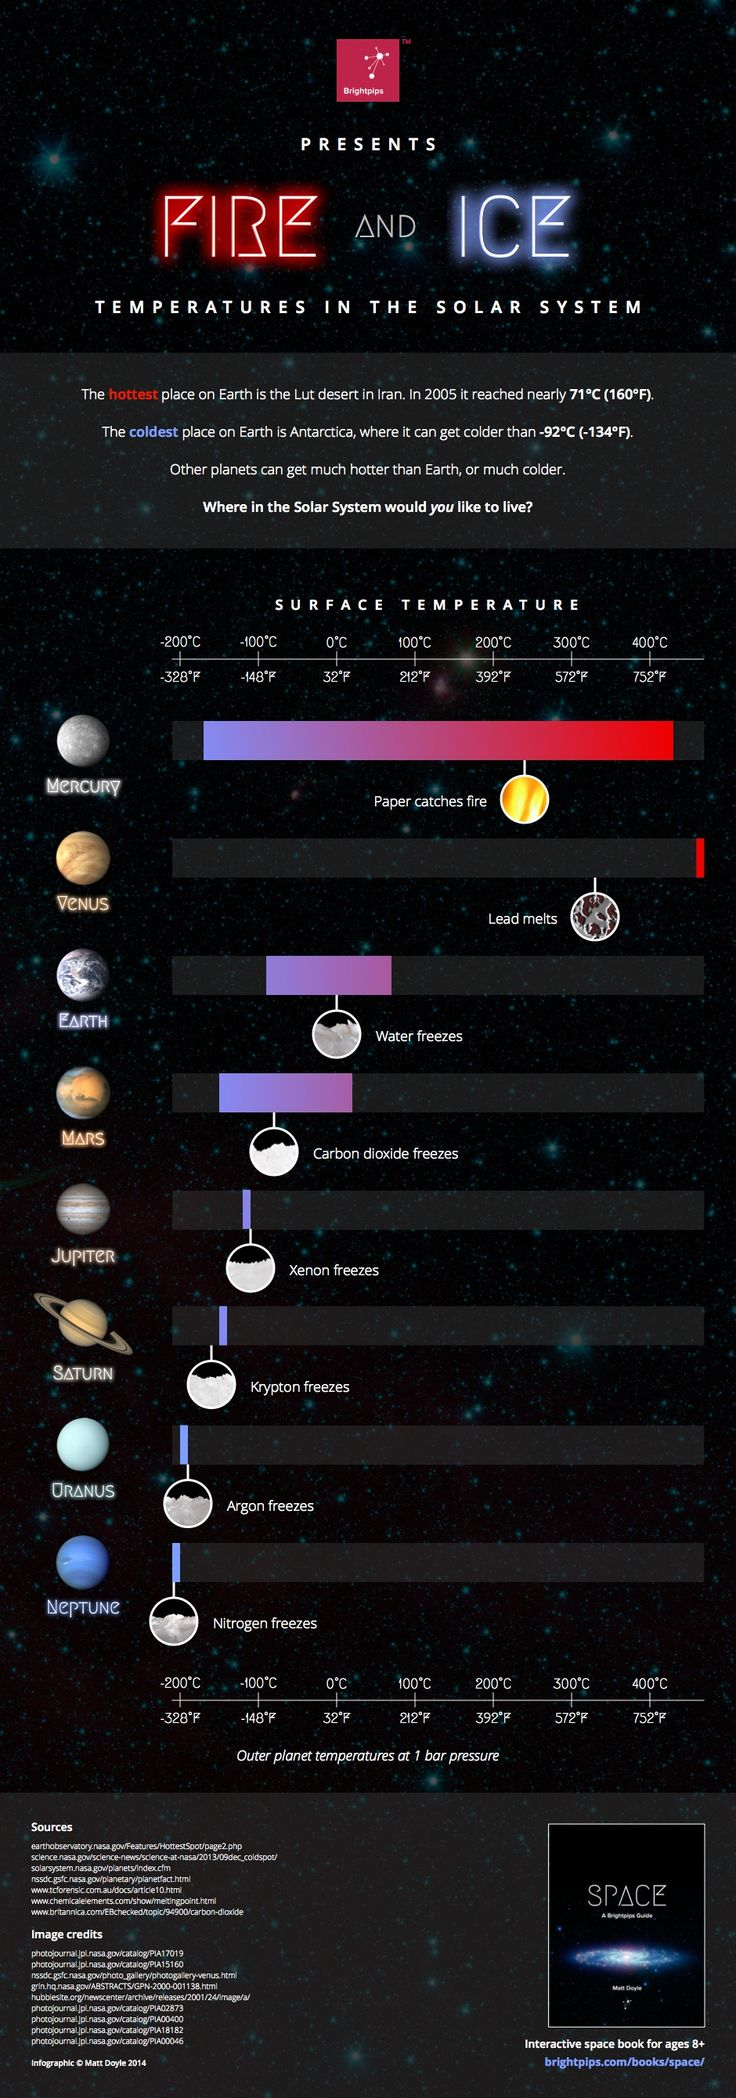 This infographic shows how temperatures vary across each planet in the Solar System. Did you know Venus is hot enough to melt lead?